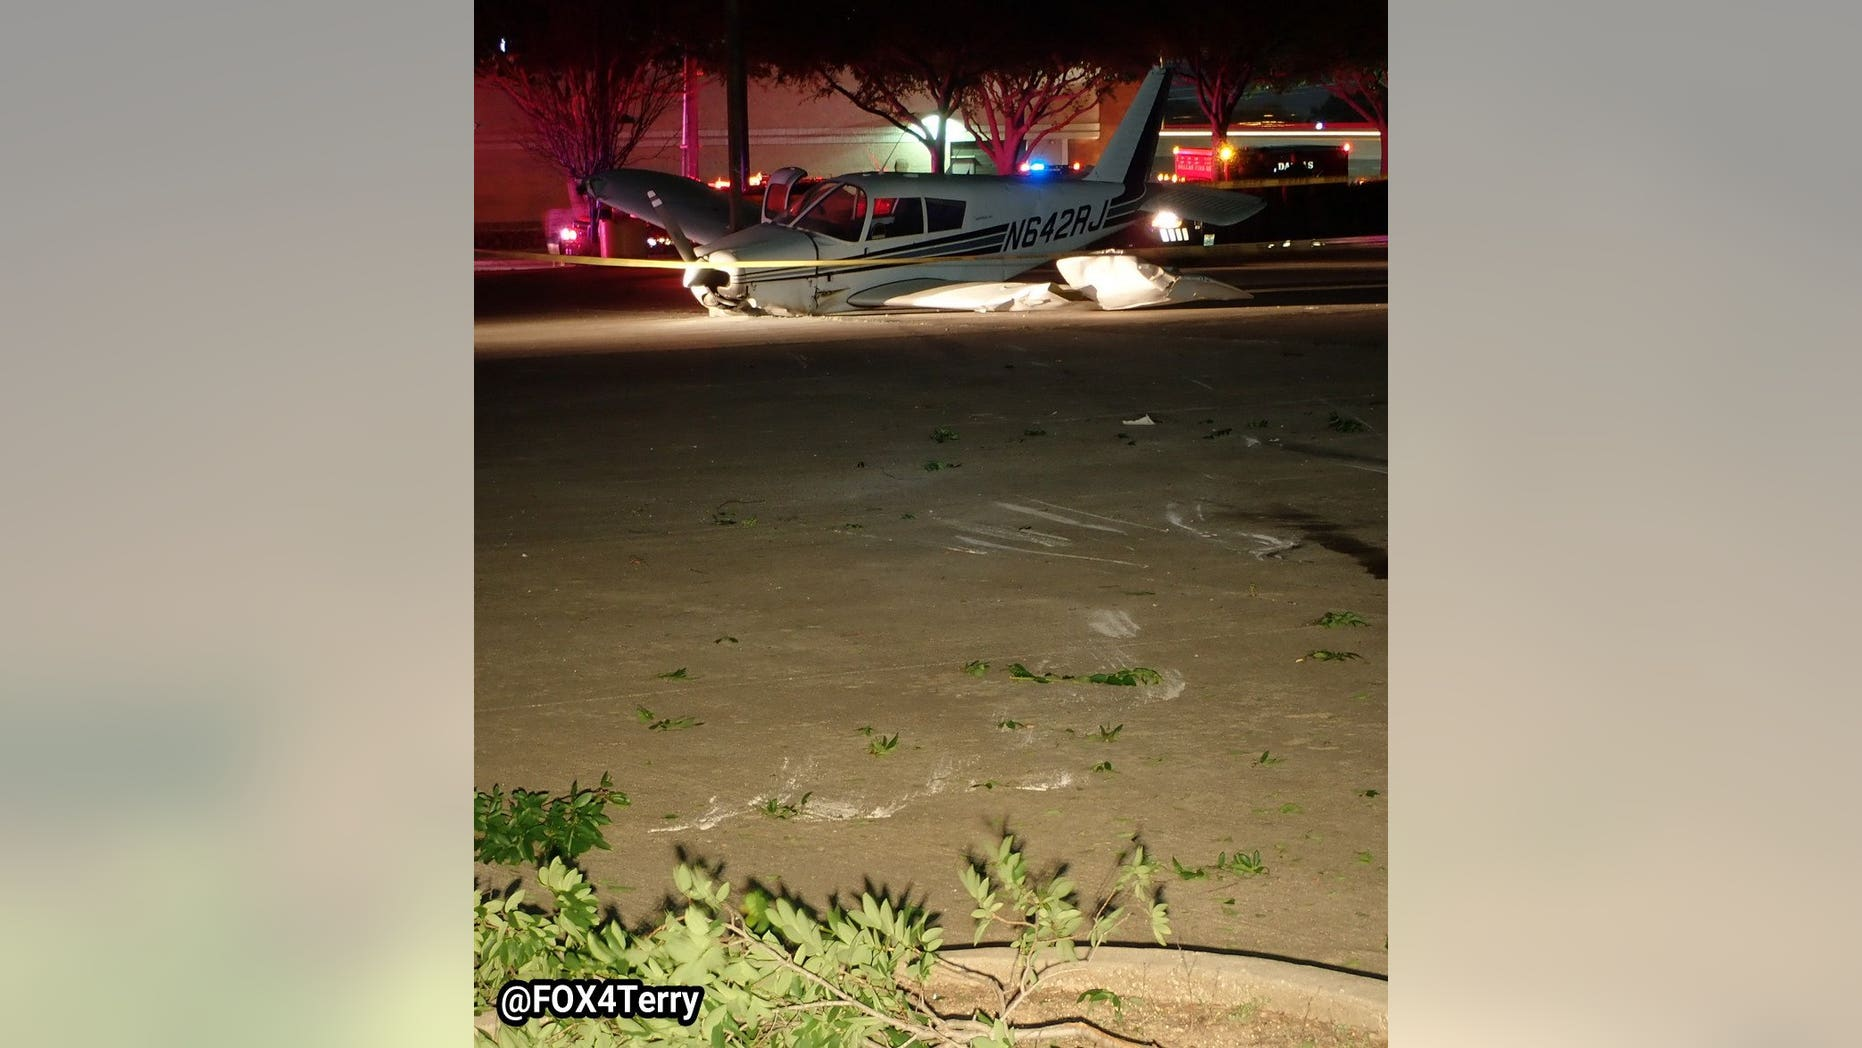 The pilot had planned to make an unscheduled landing in Addison, Texas, before coming down in the lot.